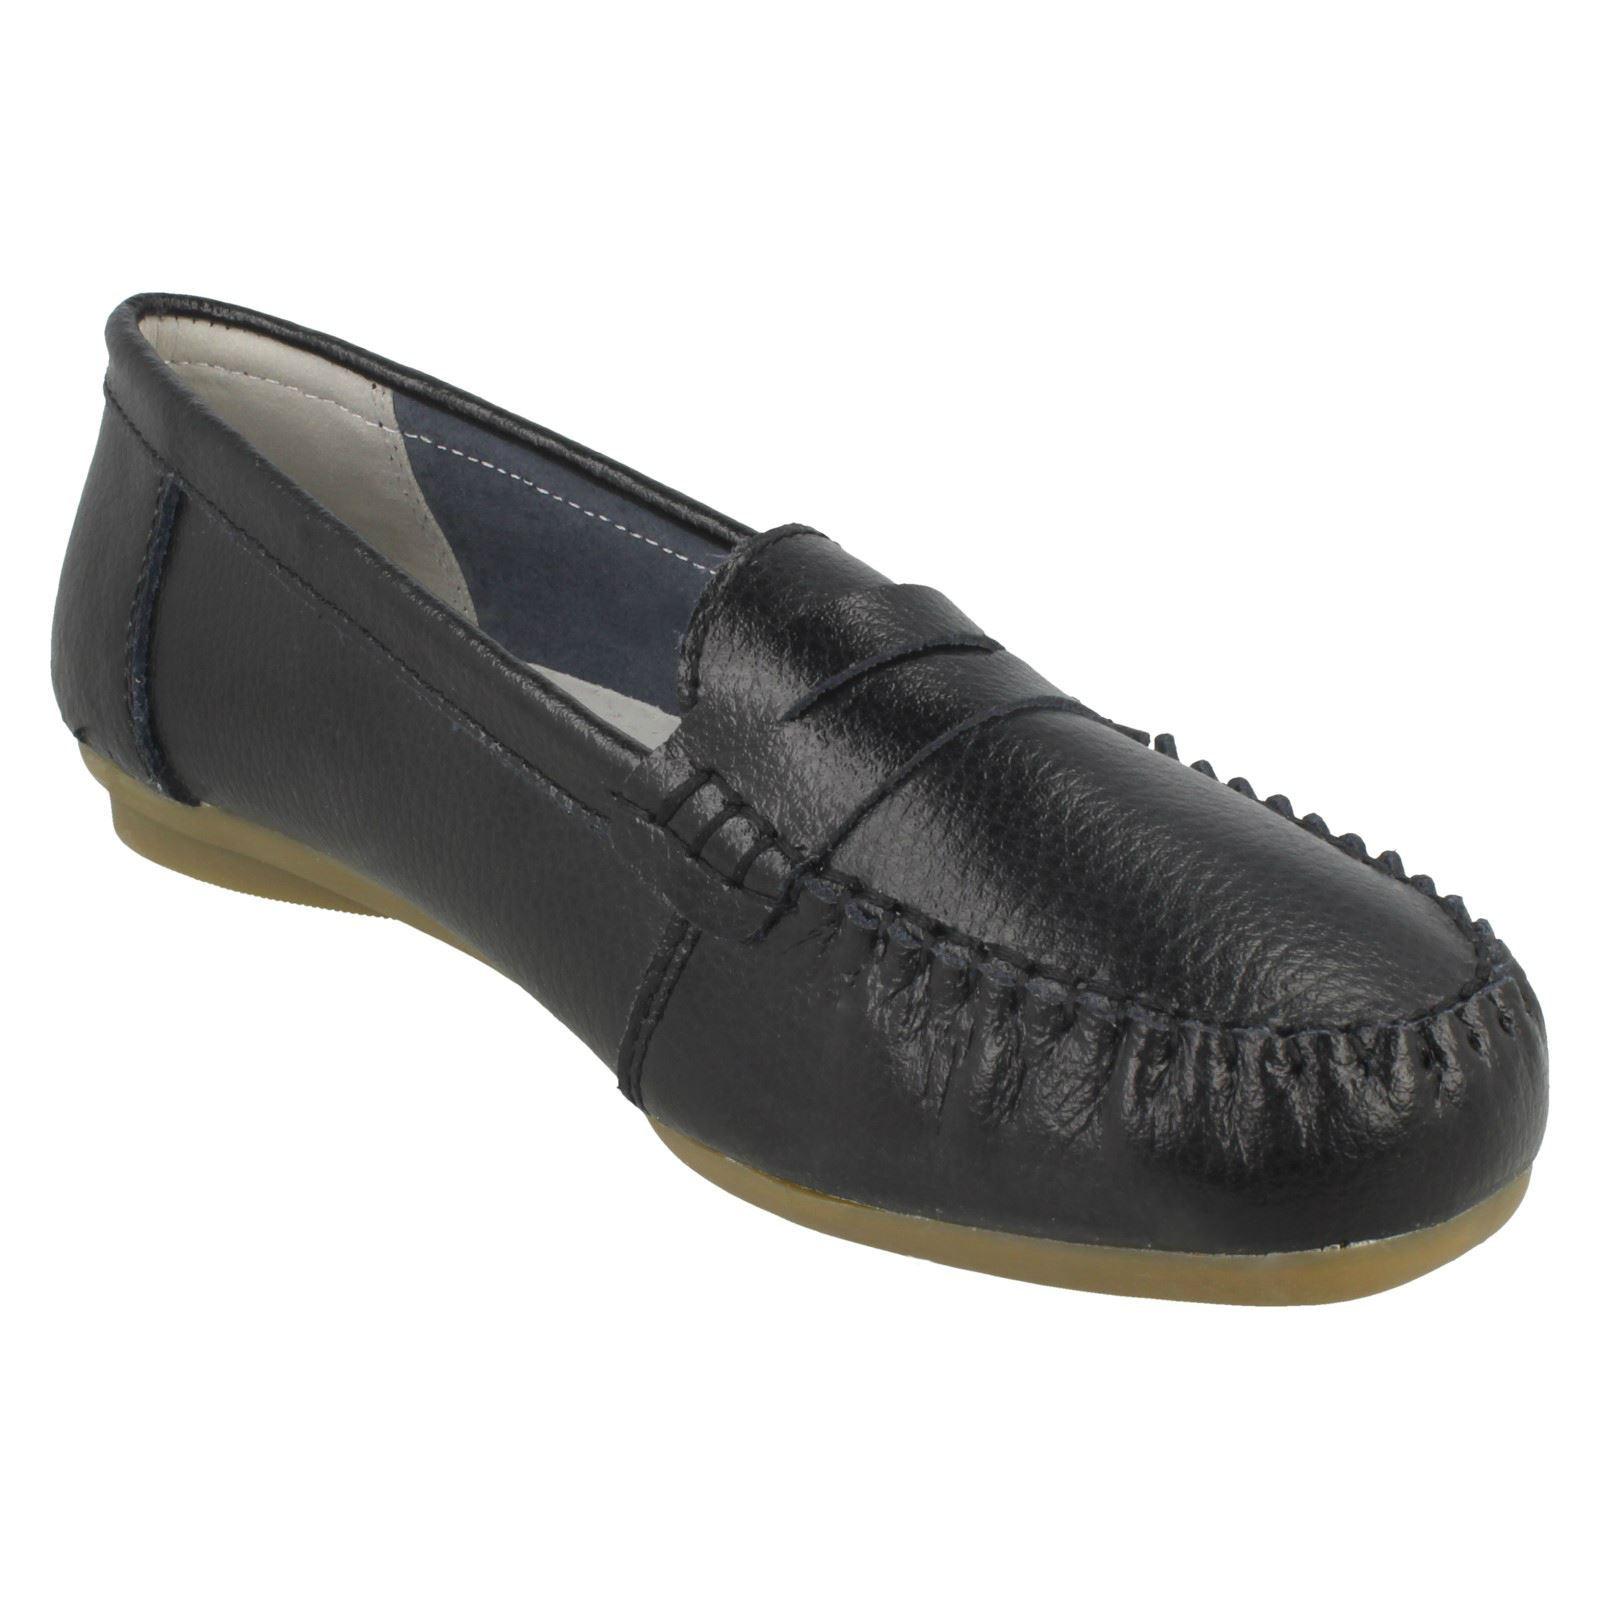 """LADIES DOWN TO EARTH BLACK LEATHER SHOES /""""F8998/"""""""